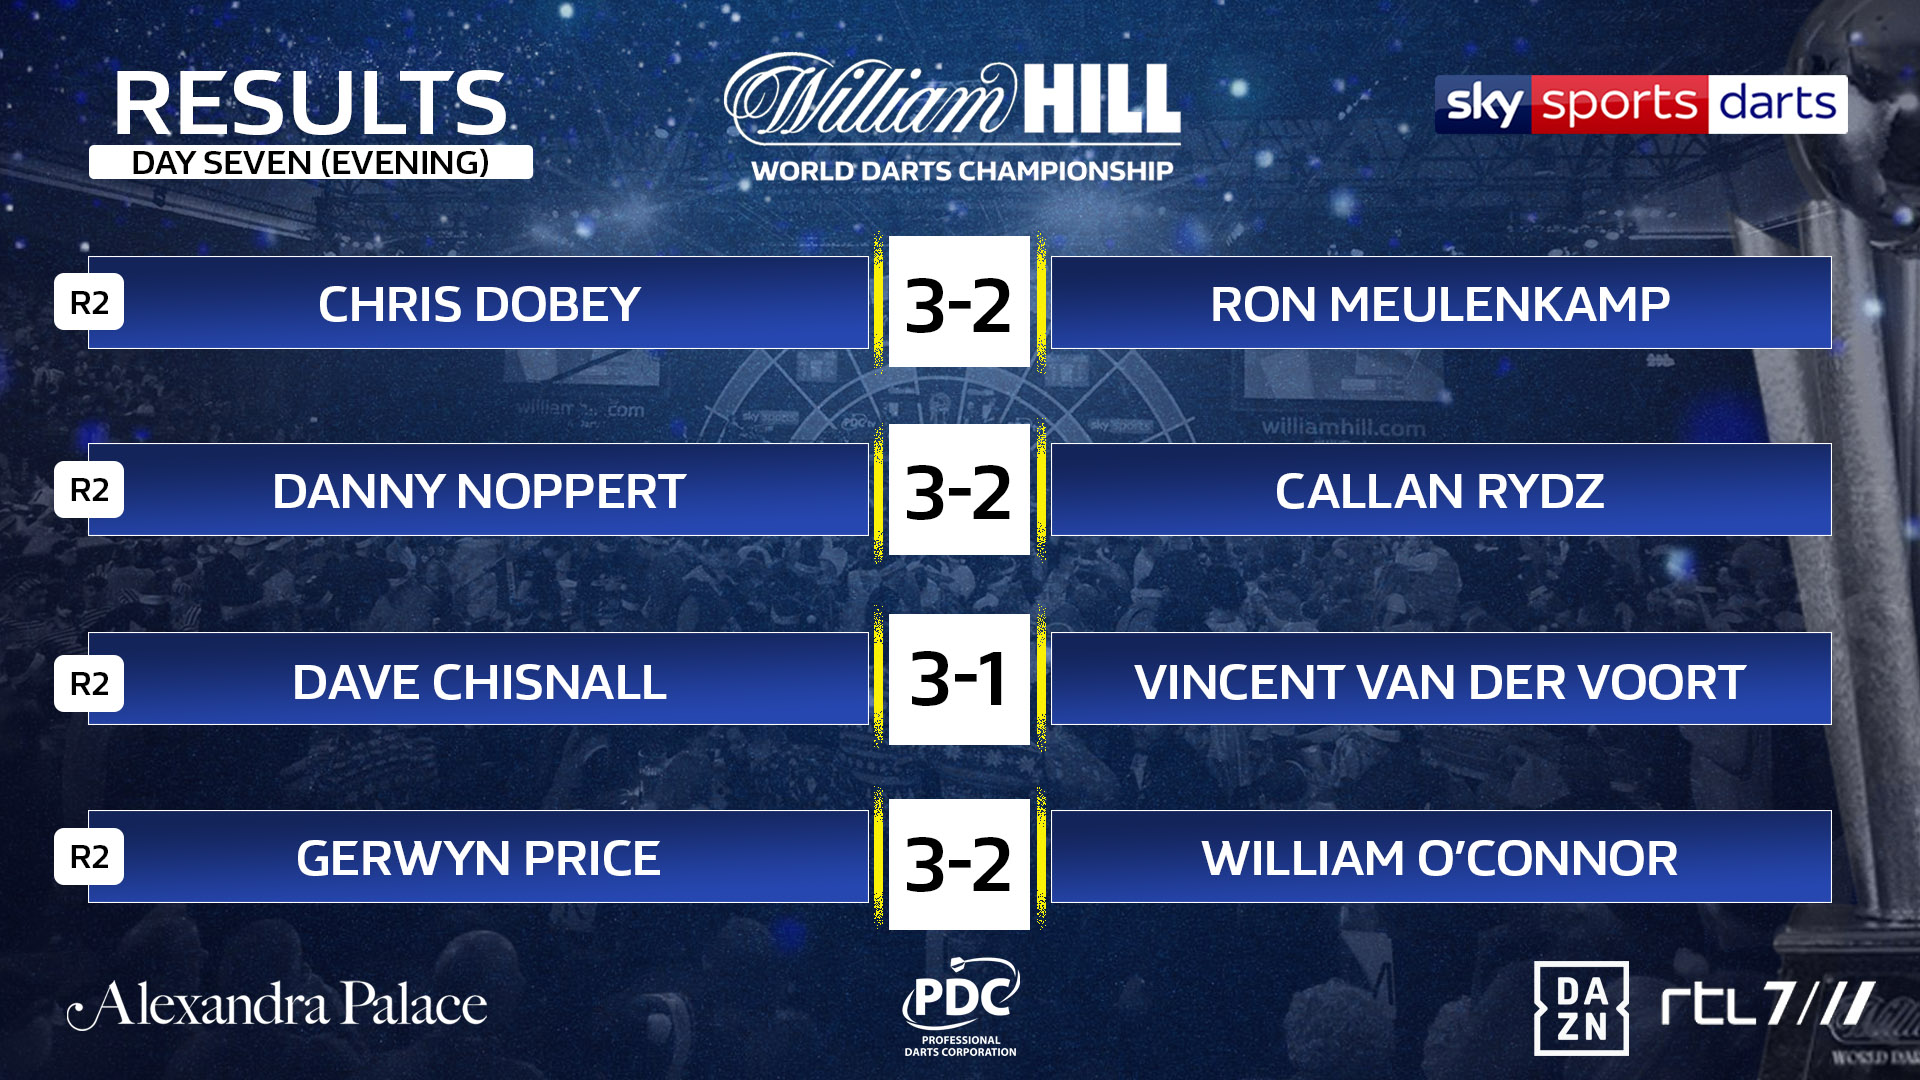 World Championship results (PDC)